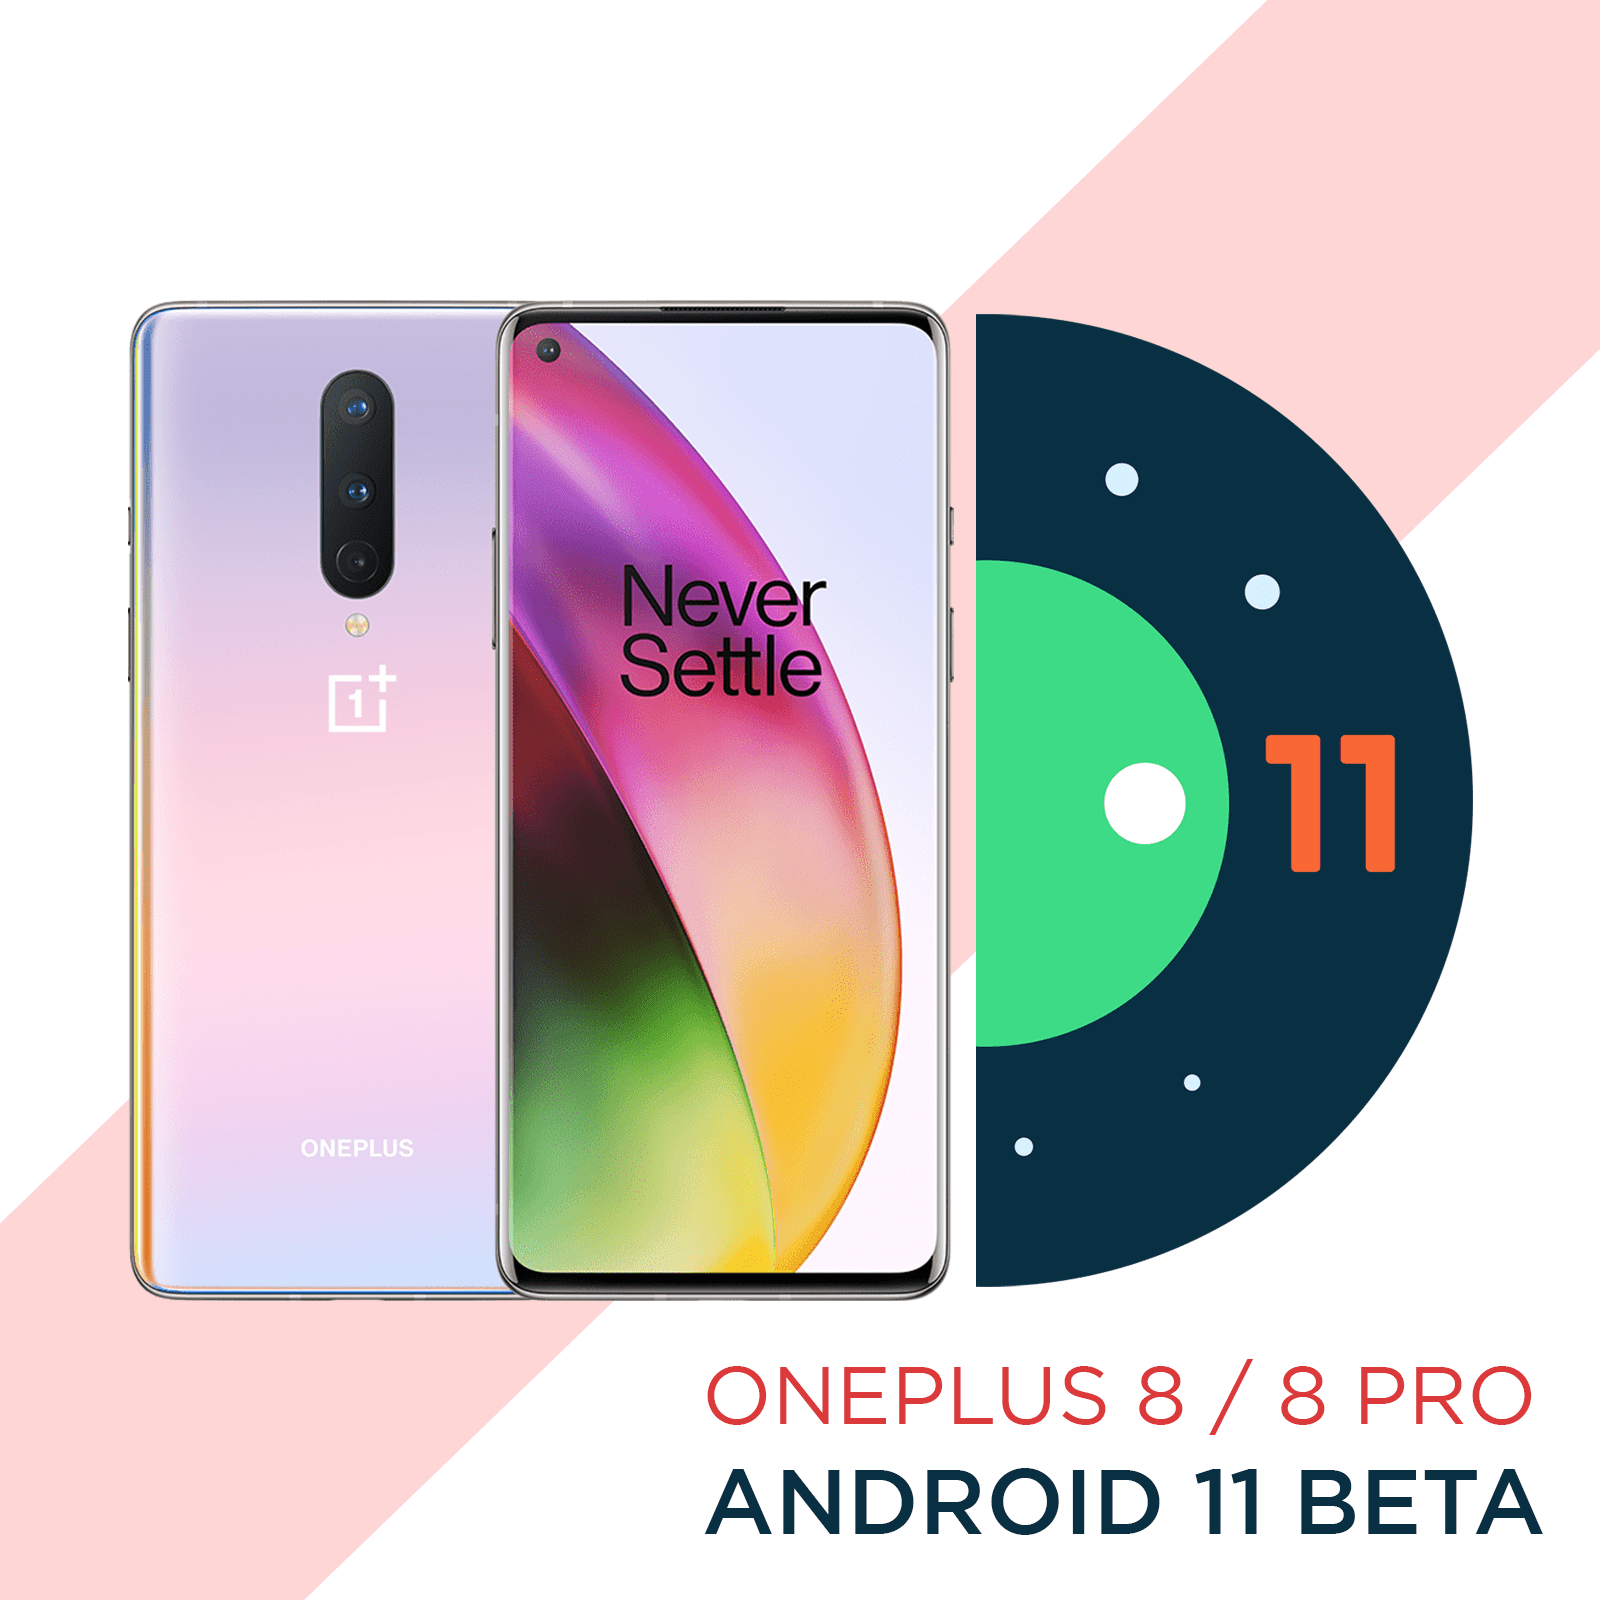 Download Android 11 Beta 2 for OnePlus 8 / 8 Pro 1